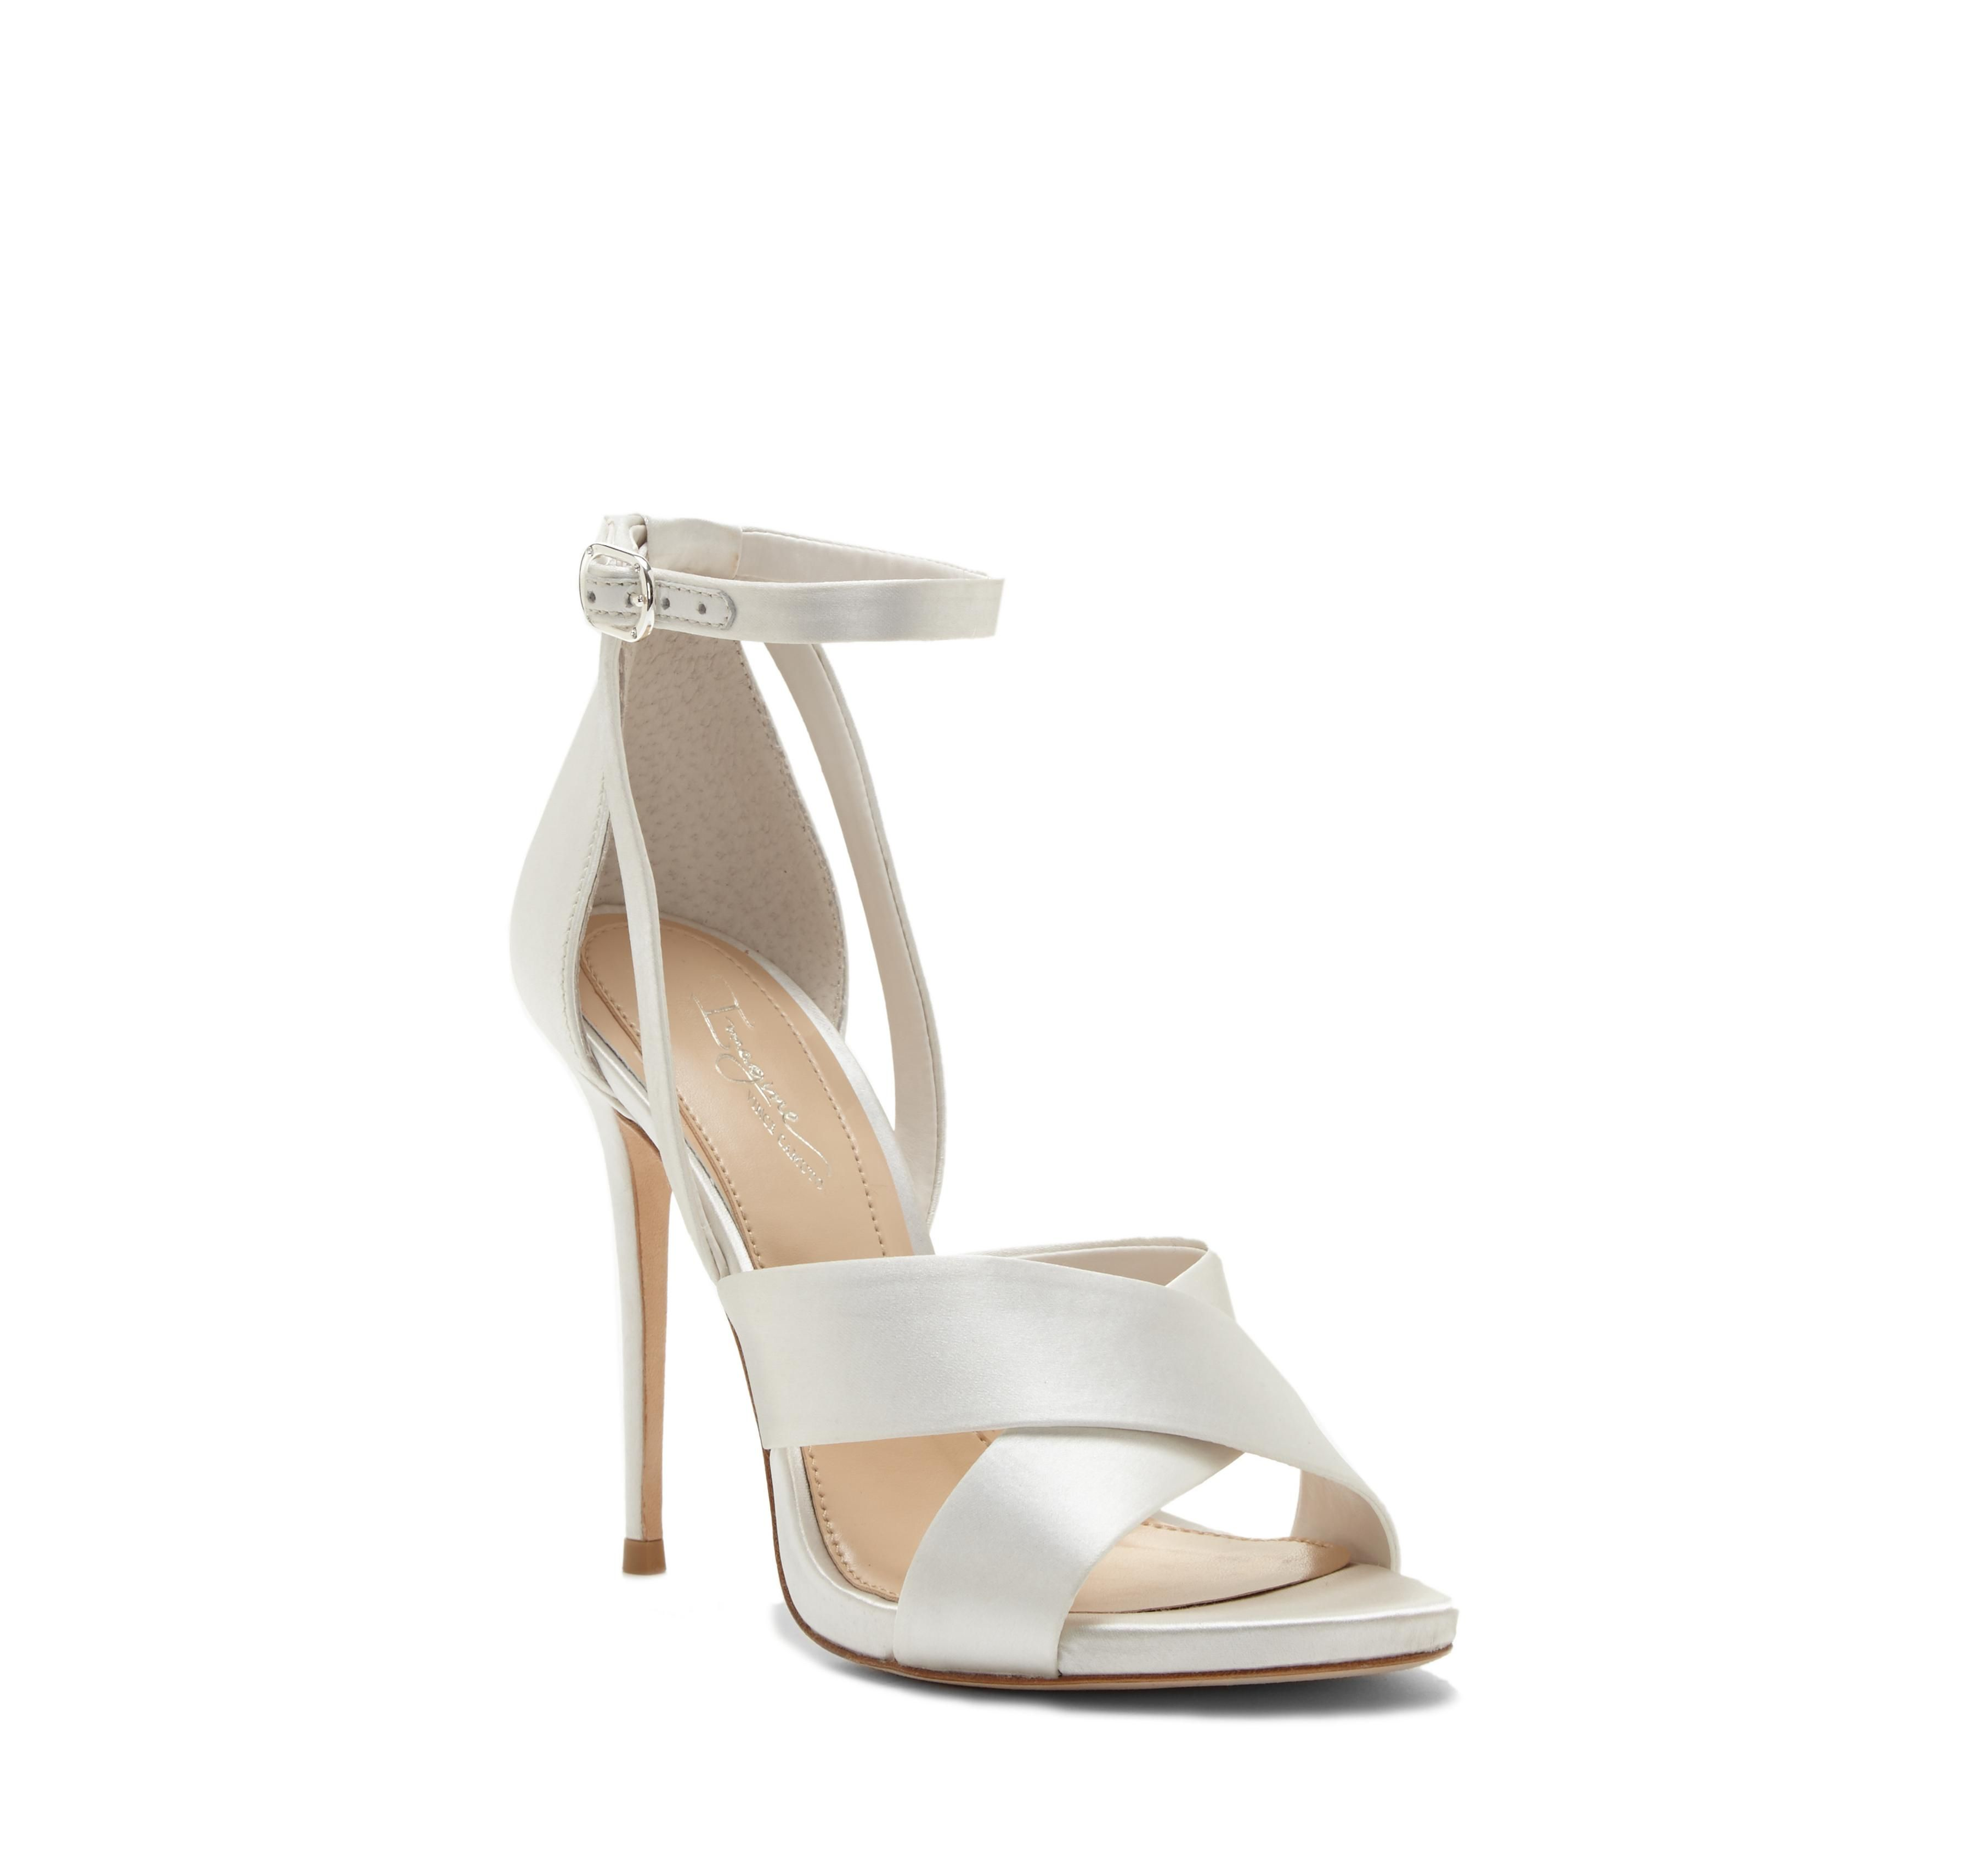 Imagine Vince Camuto Dairren – Satin Heeled Sandal